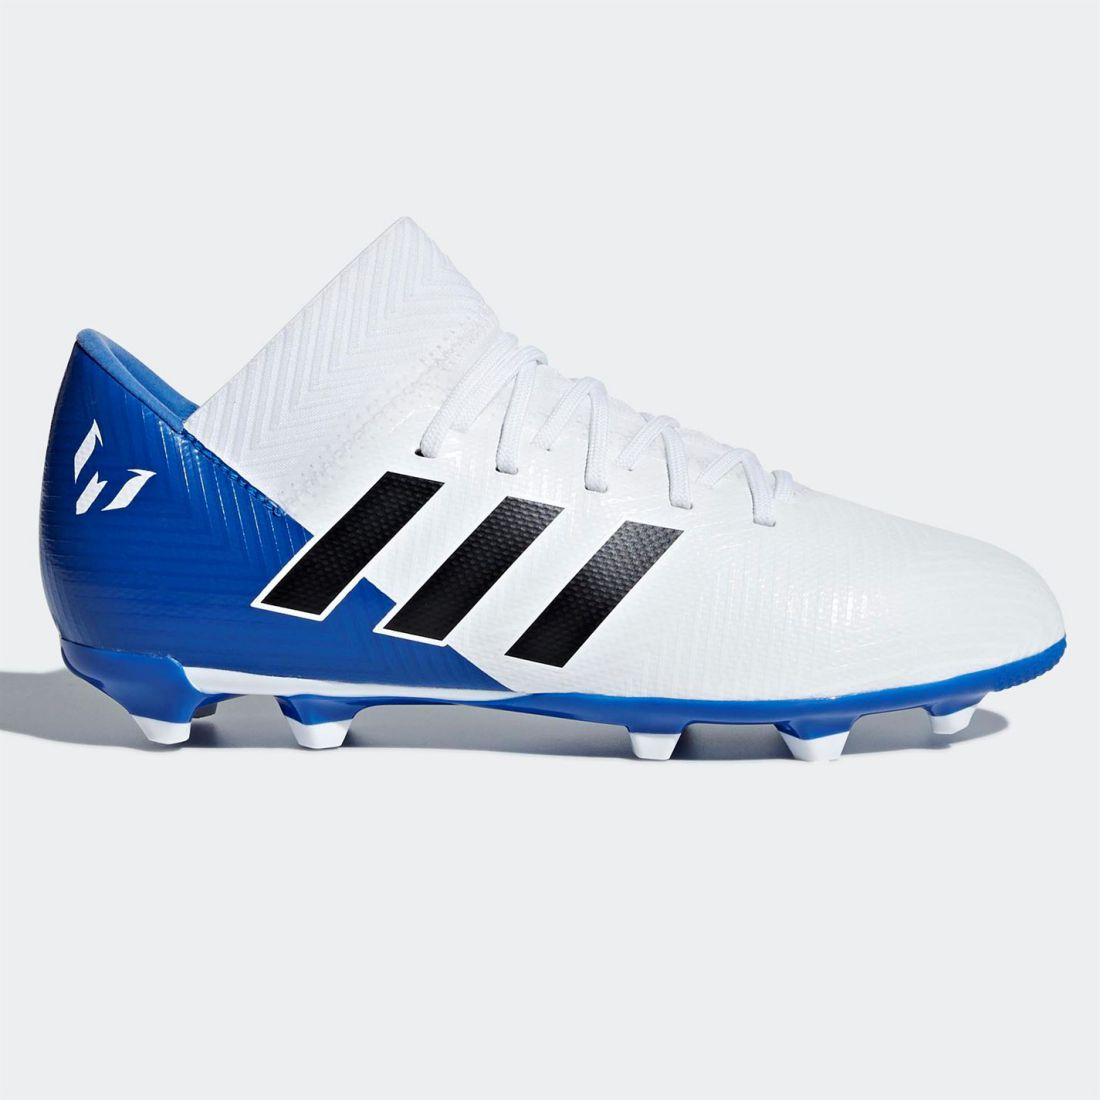 outlet store b9063 f5c8a adidas Kids Boys Nemeziz Messi 18.3 Childs FG Football Boots Firm Ground  Lace Up